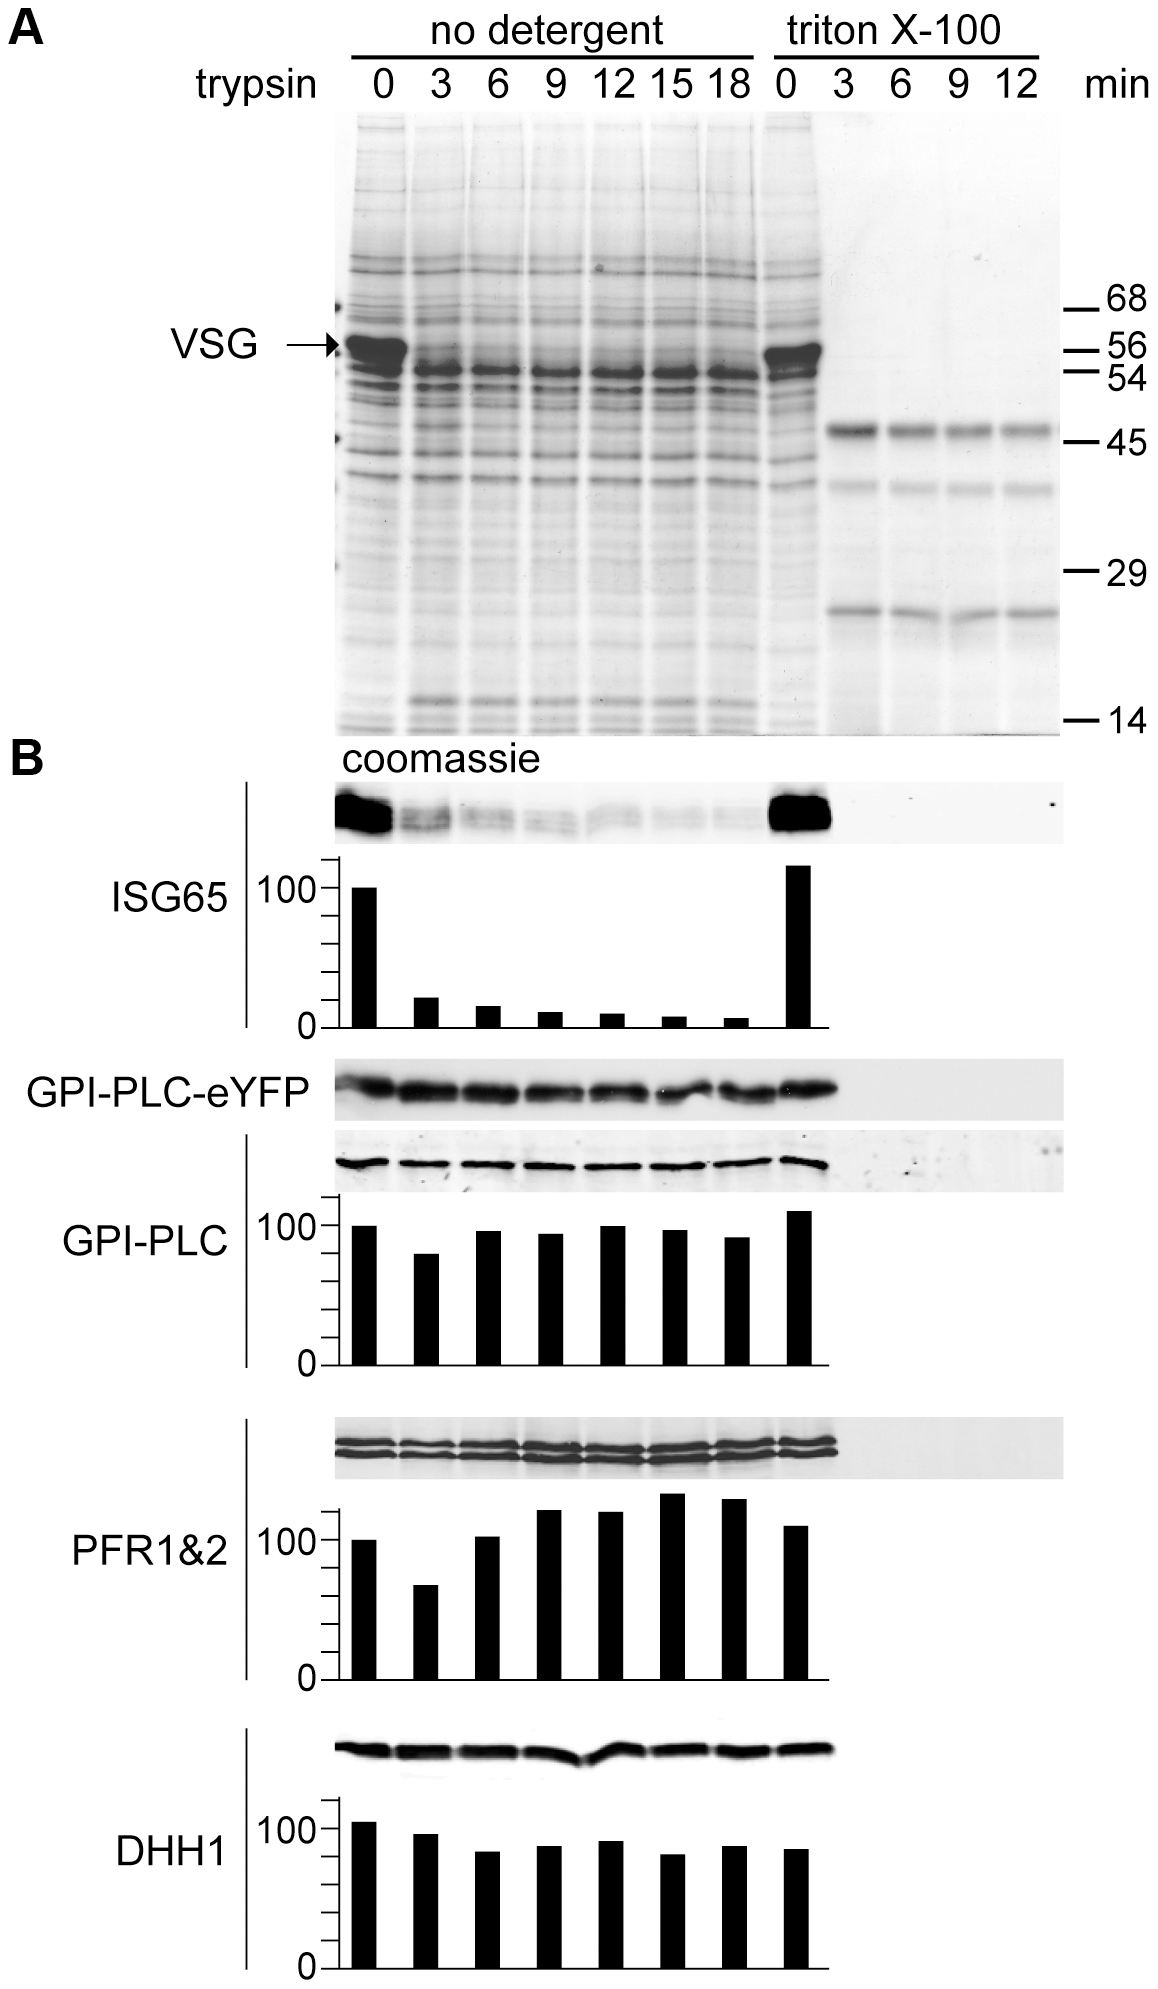 GPI-PLC is not sensitive to trypsin digest in live cells.